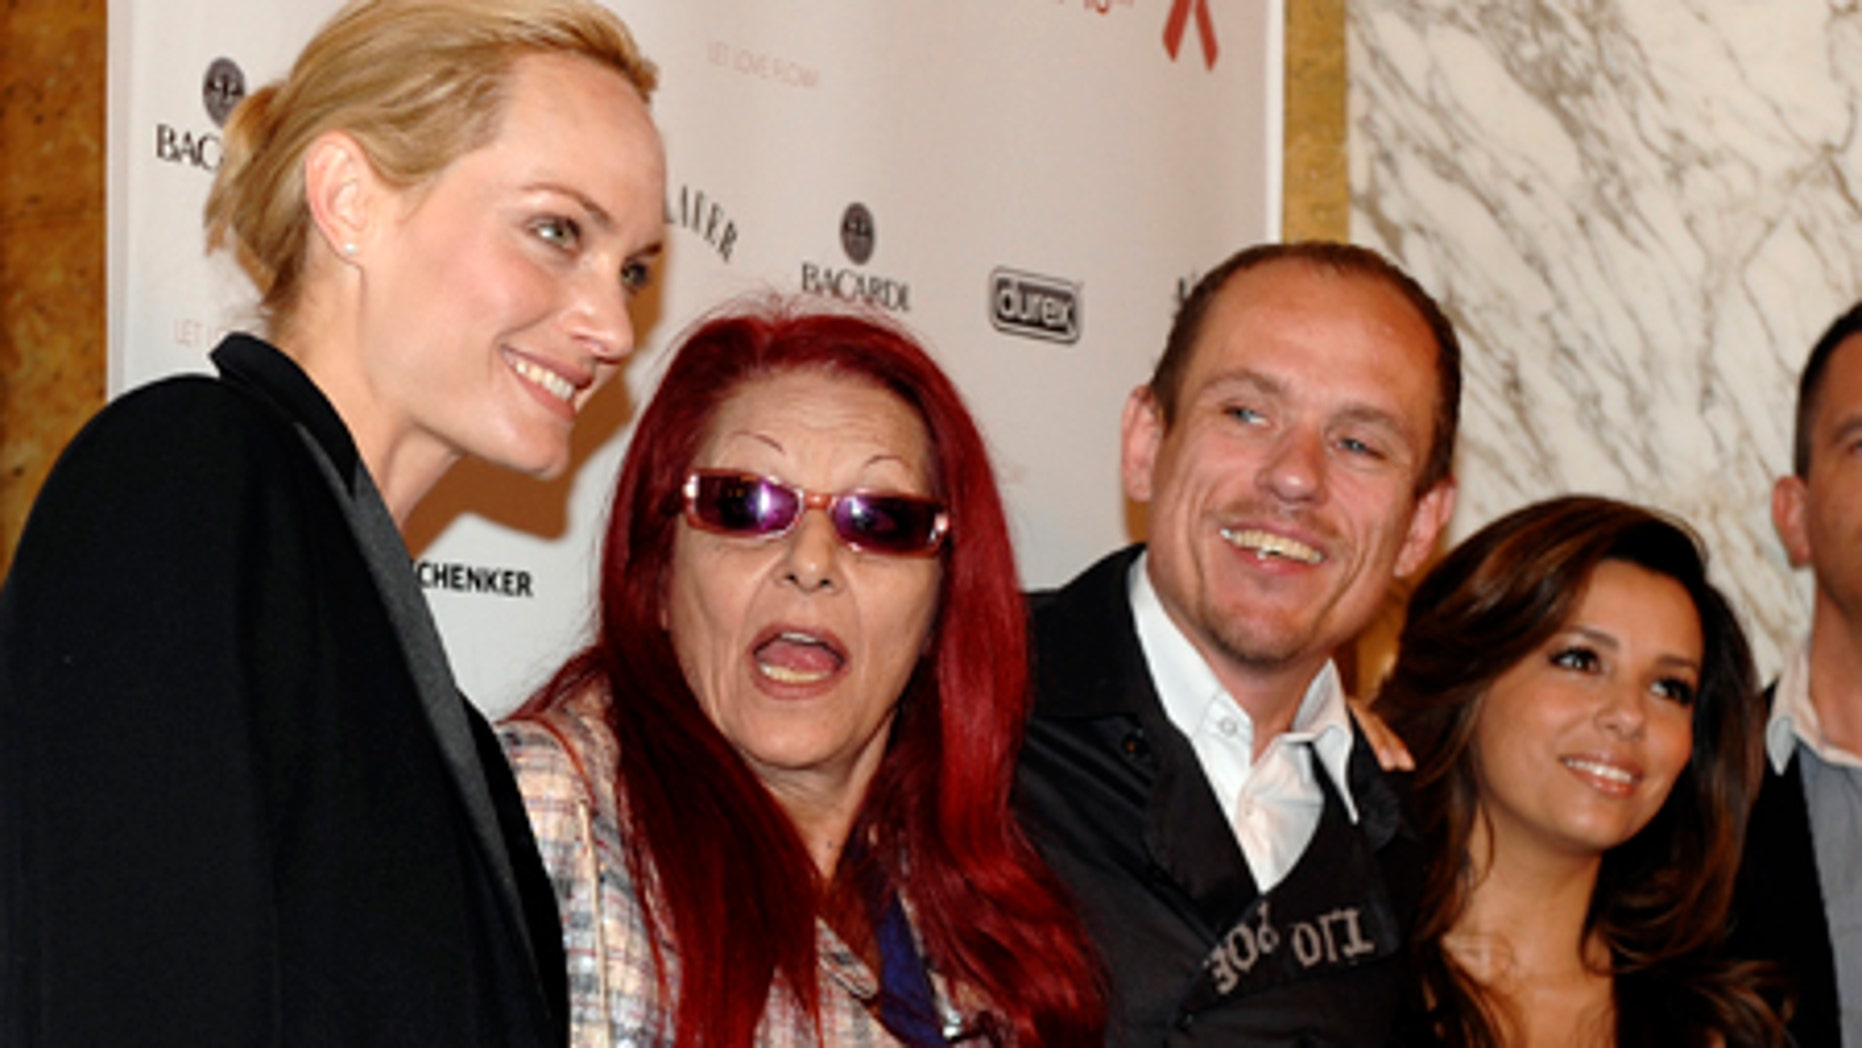 Actress Amber Valletta, designer Patricia Field, Life Ball organizer Gery Keszler and actress Eva Longoria, from left, pose for photographers at a news conference in Vienna, Saturday, May 16, 2009. They are in Vienna for the Austrian capital's annual Life Ball 09, a gay charity gala aimed at raising money for people with AIDS. (AP Photo/Hans Punz)